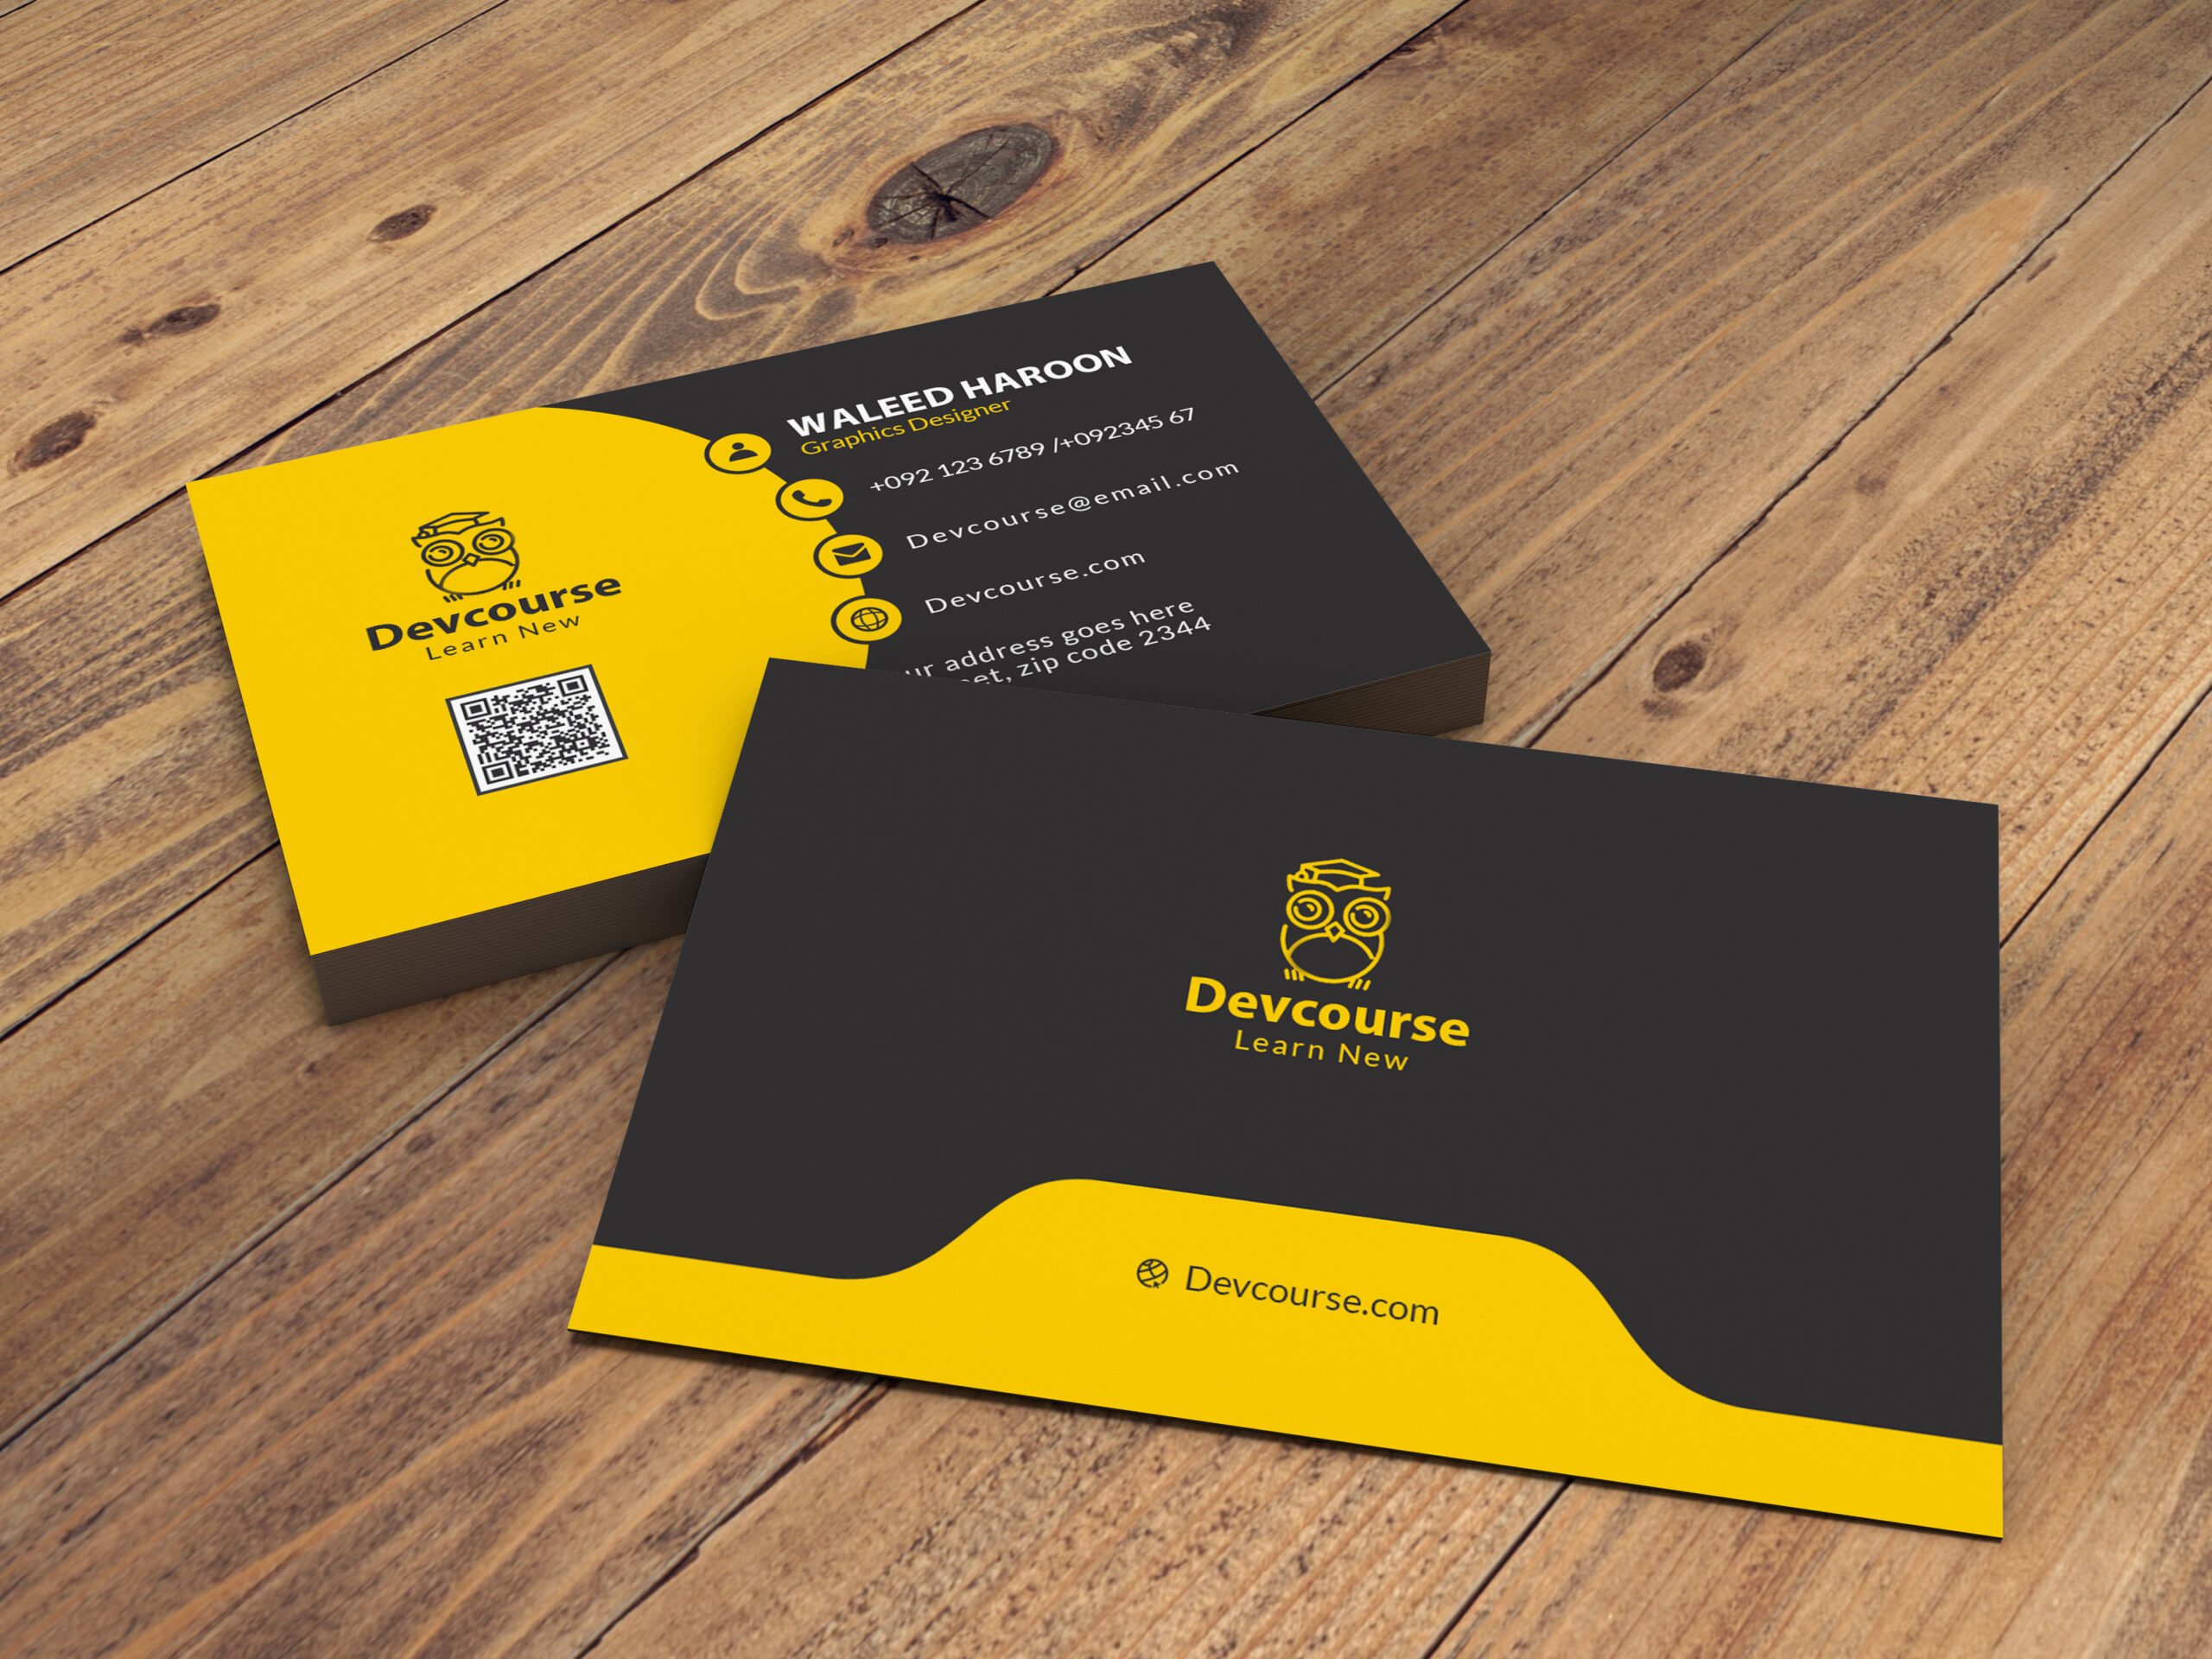 How to Design Business Card in Adobe Photoshop